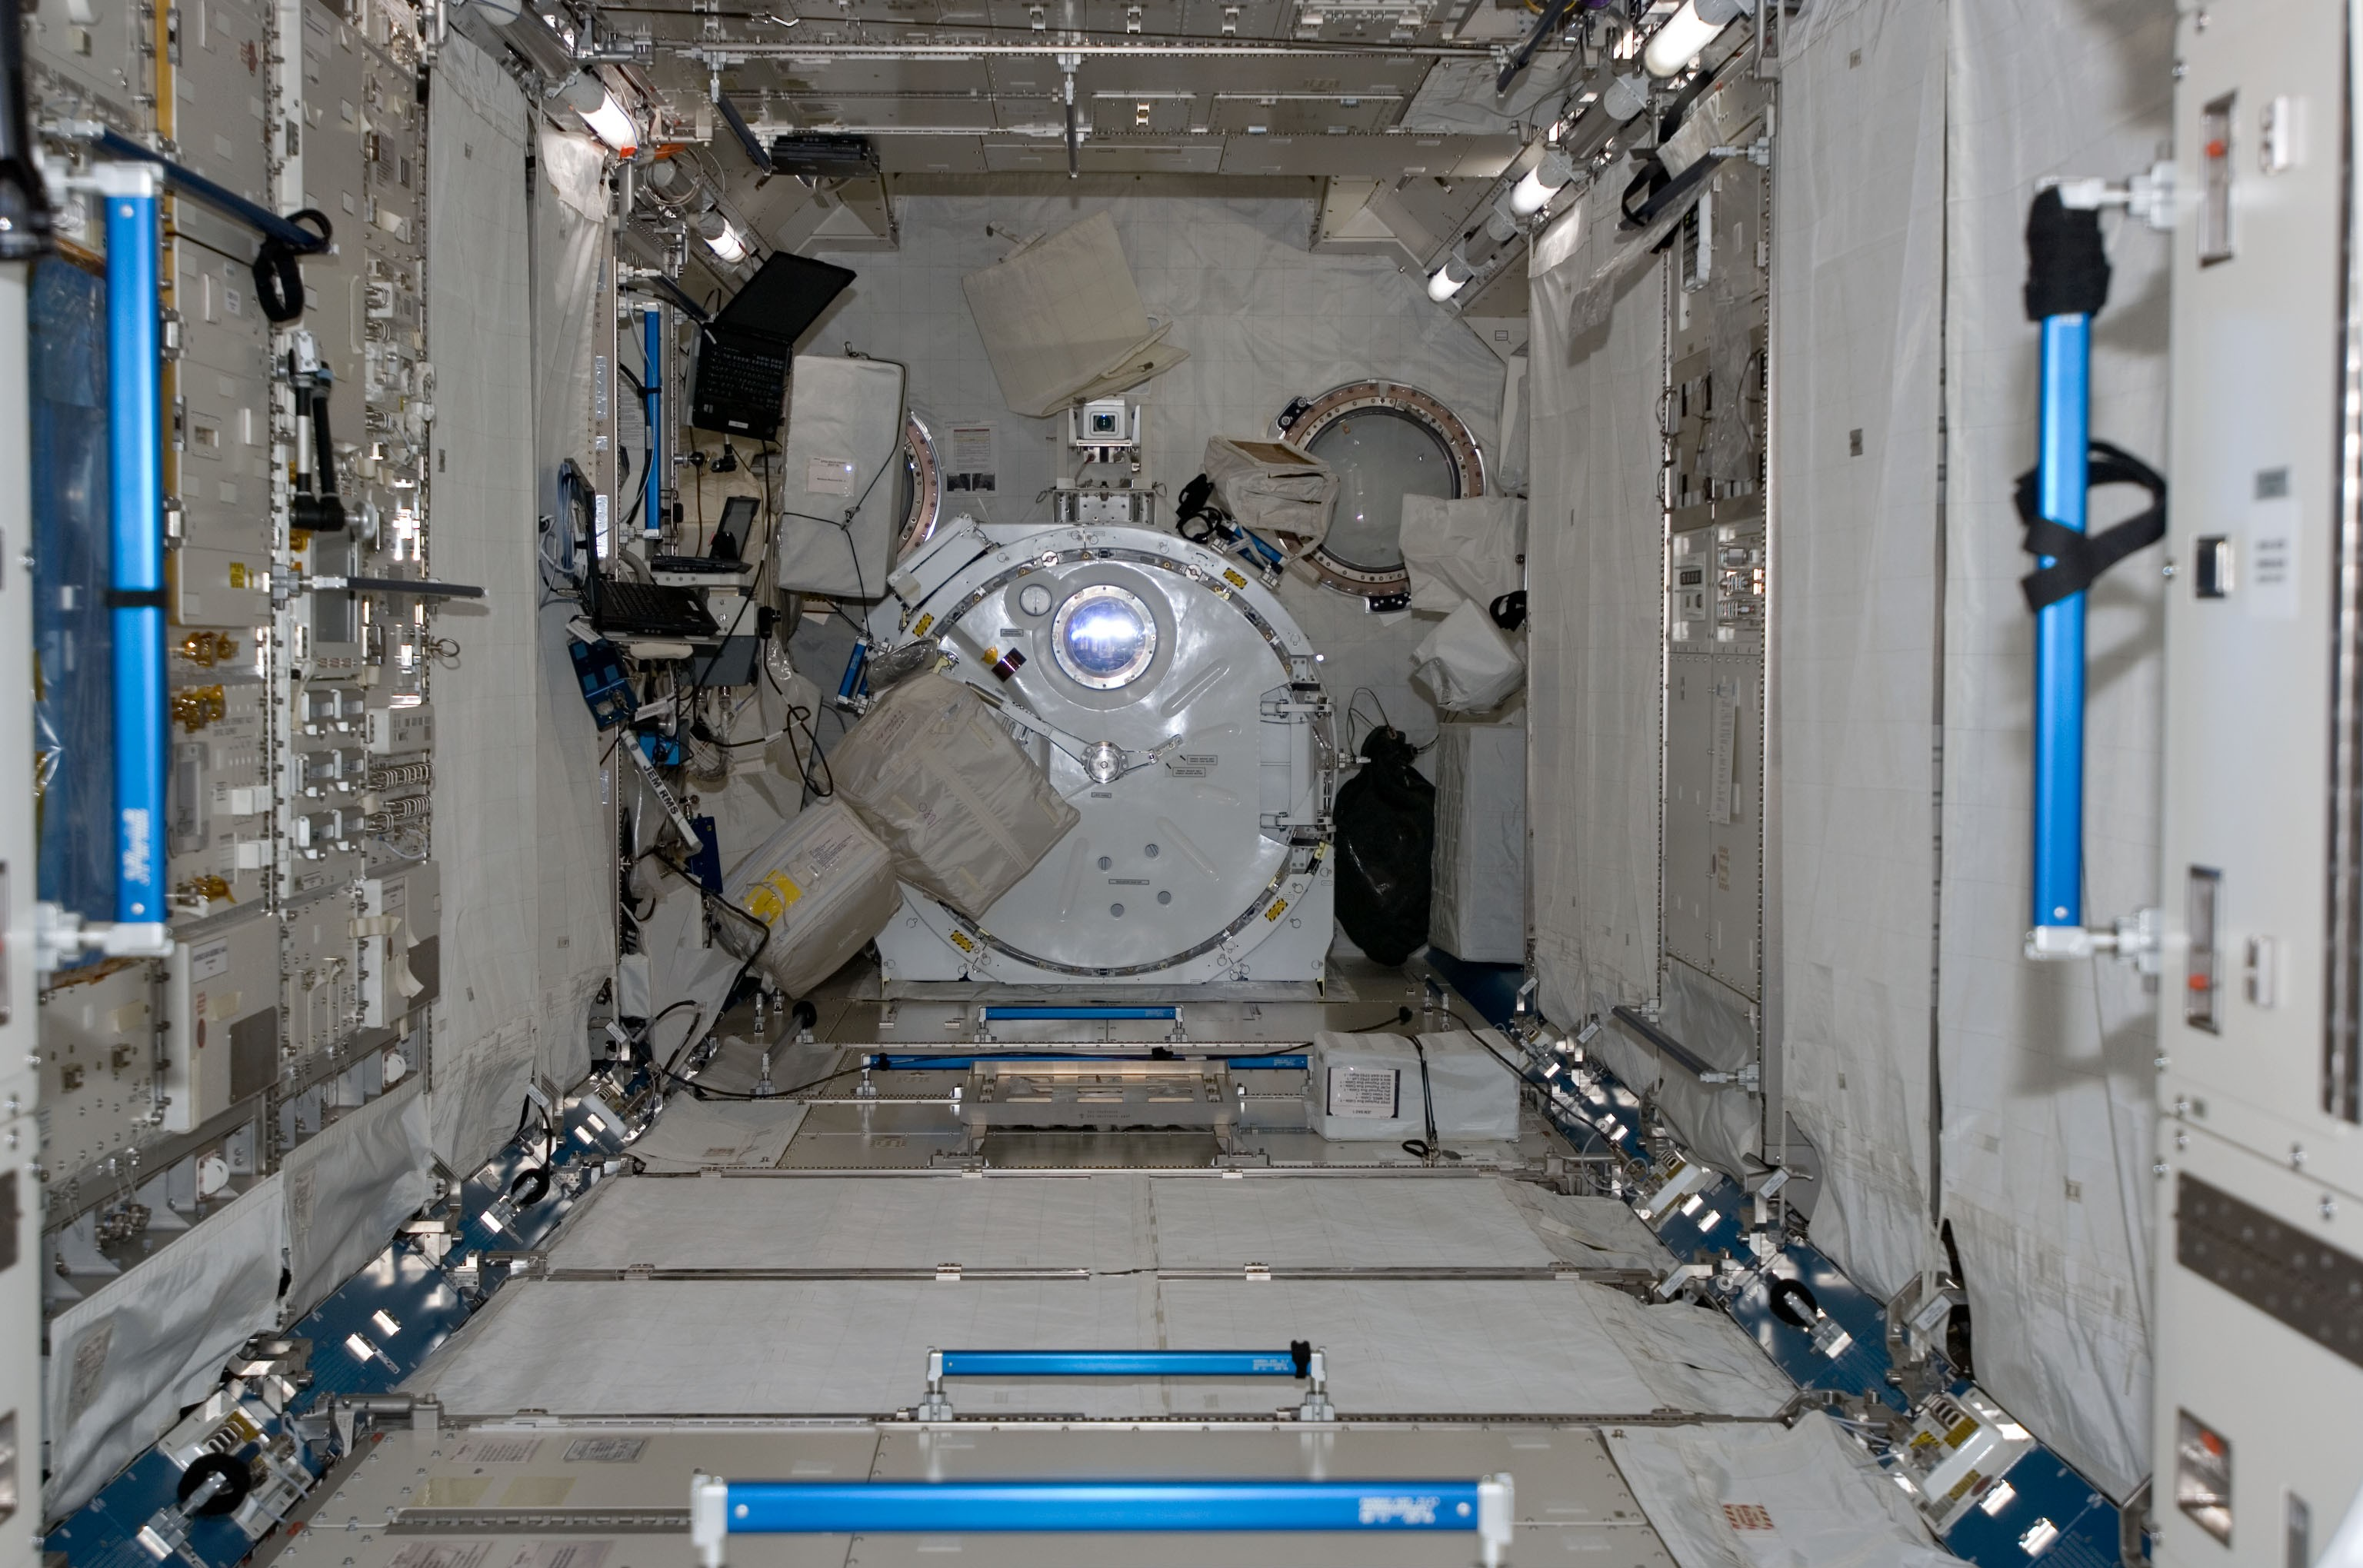 inside space station images - photo #18